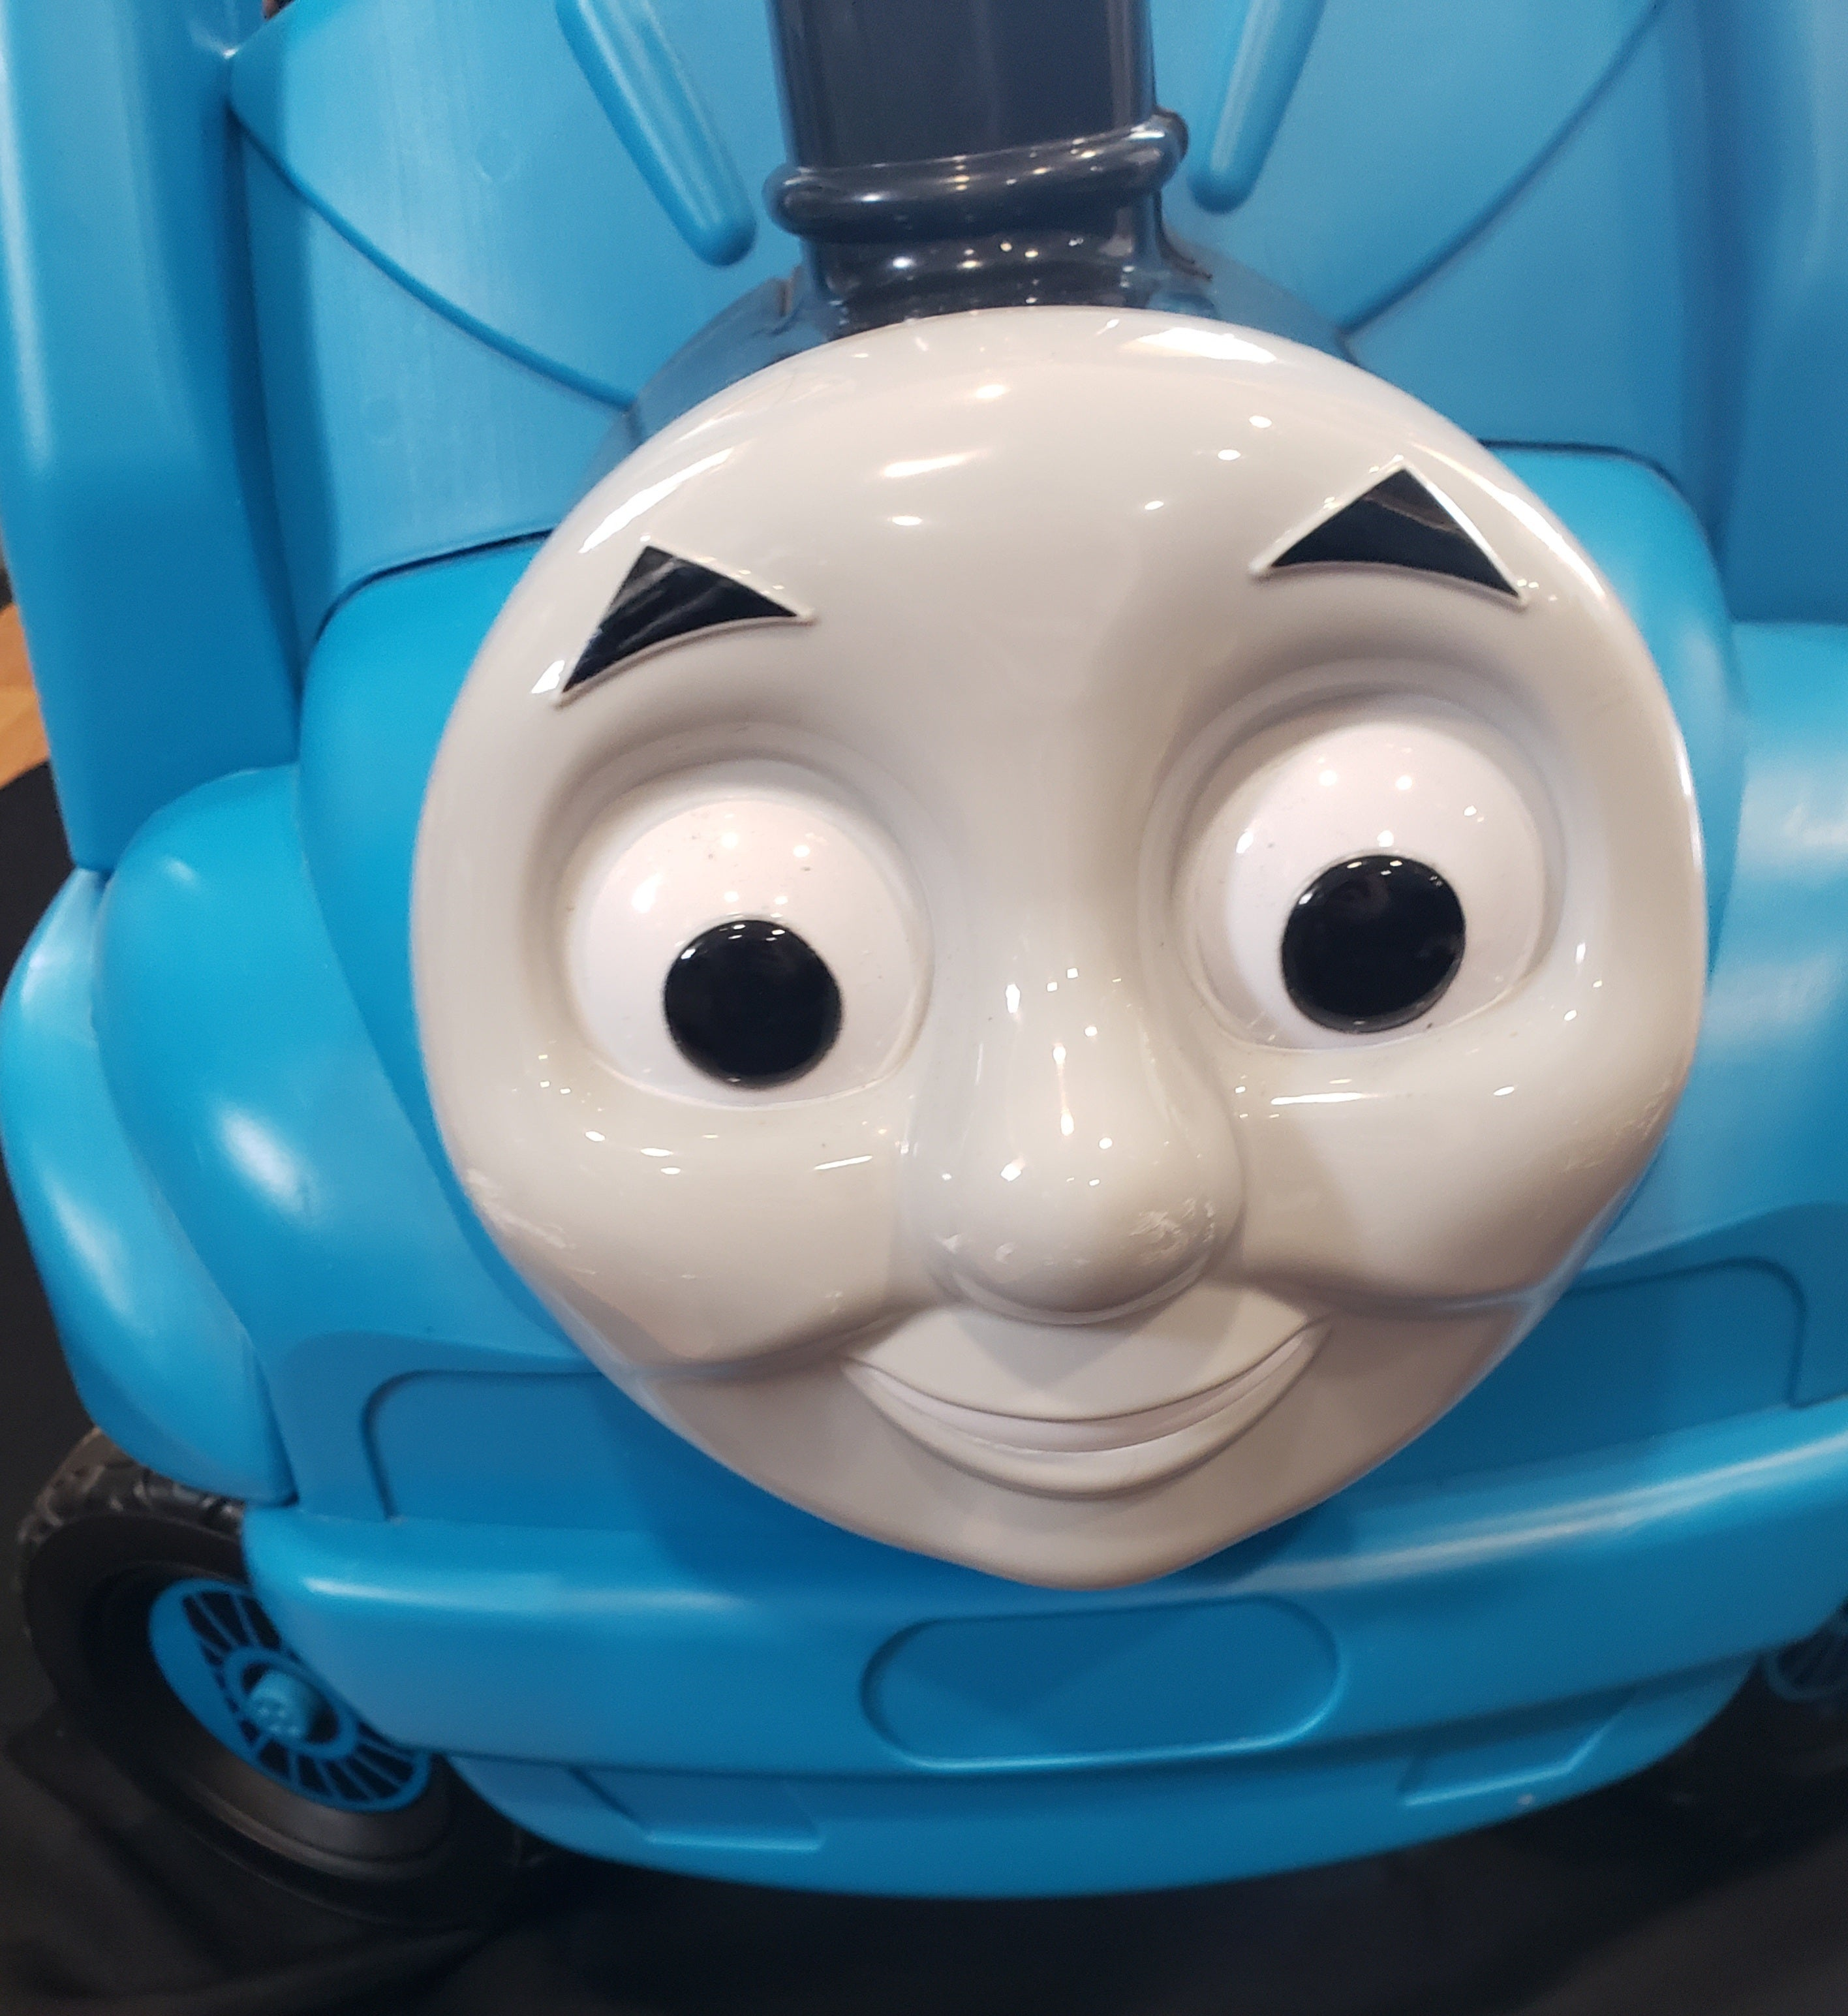 Thomas the Train ridding foot powered car